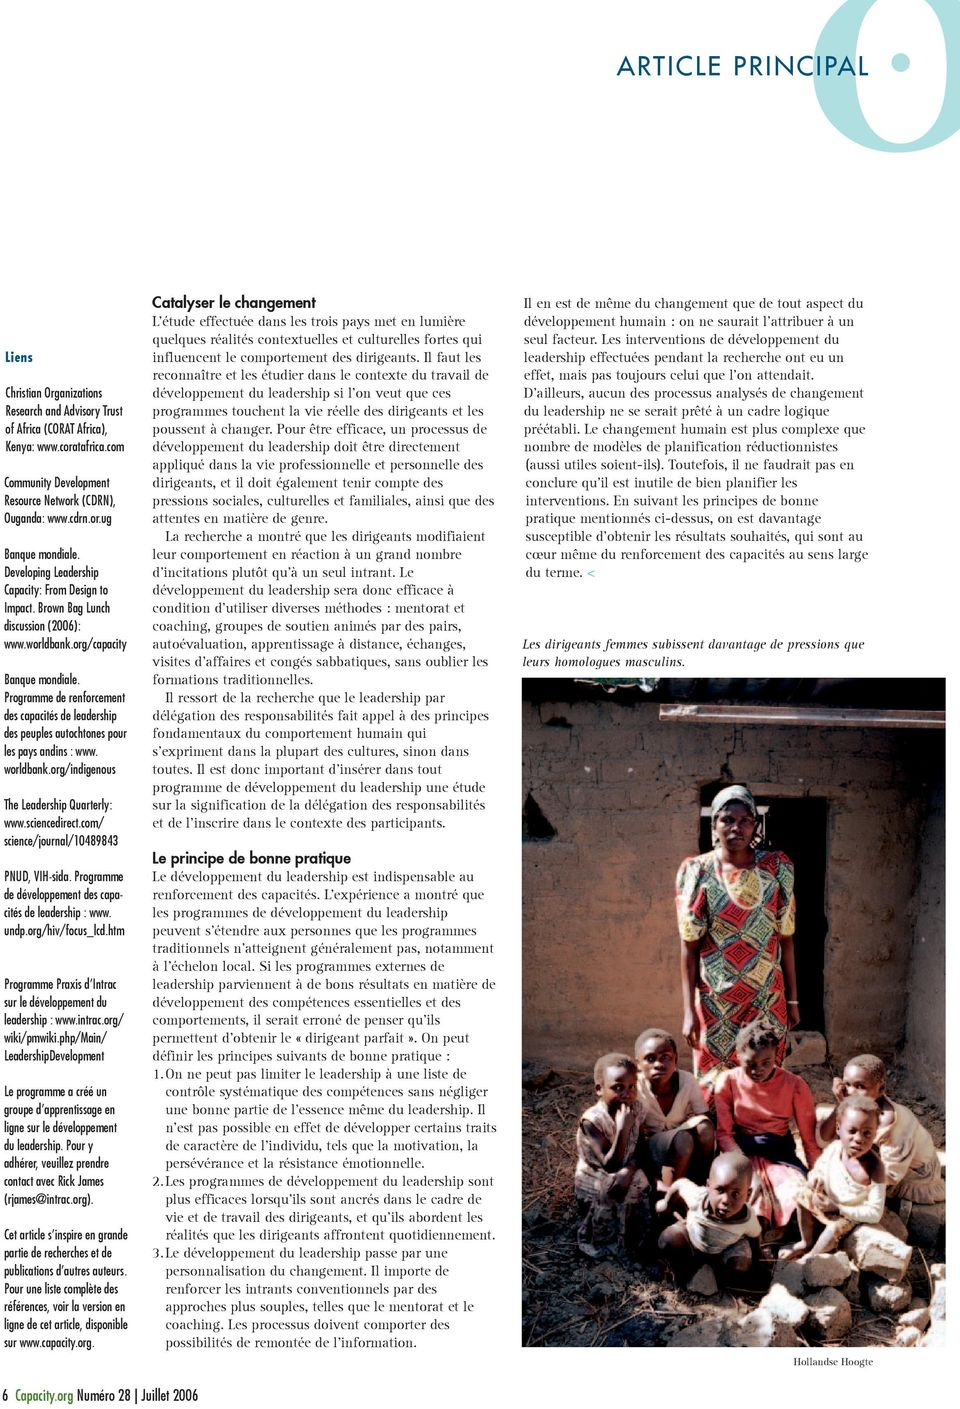 Programme de renforcement des capacités de leadership des peuples autochtones pour les pays andins : www. worldbank.org/indigenous The Leadership Quarterly: www.sciencedirect.